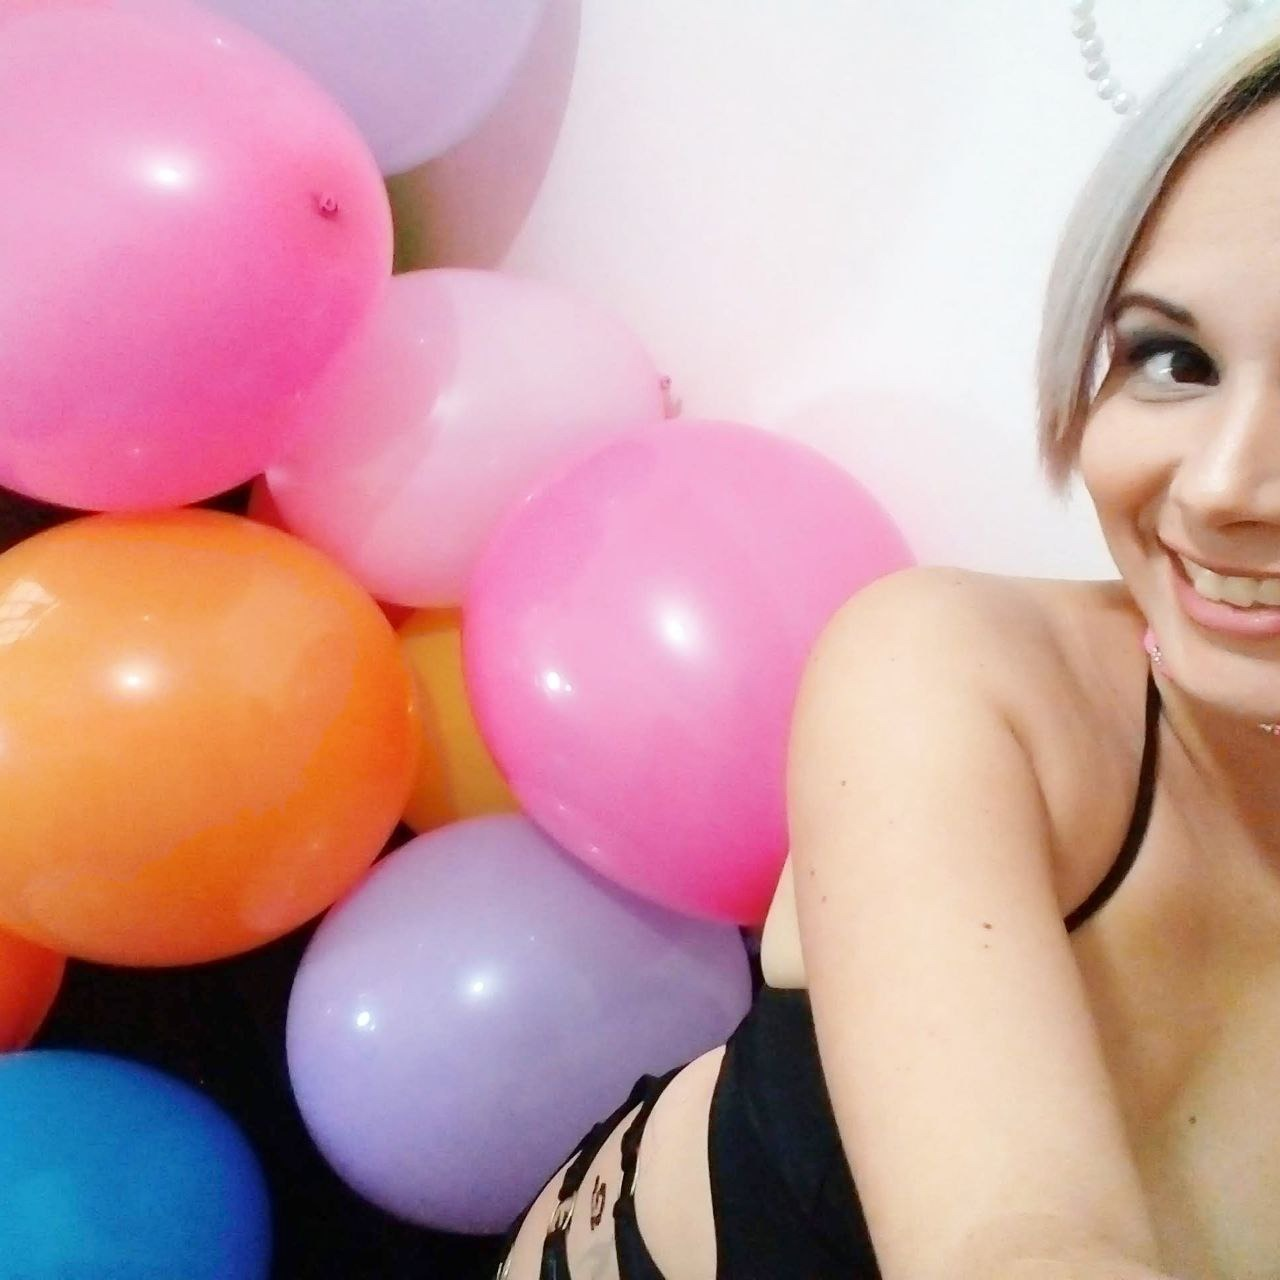 Fabi ready to be with balloons